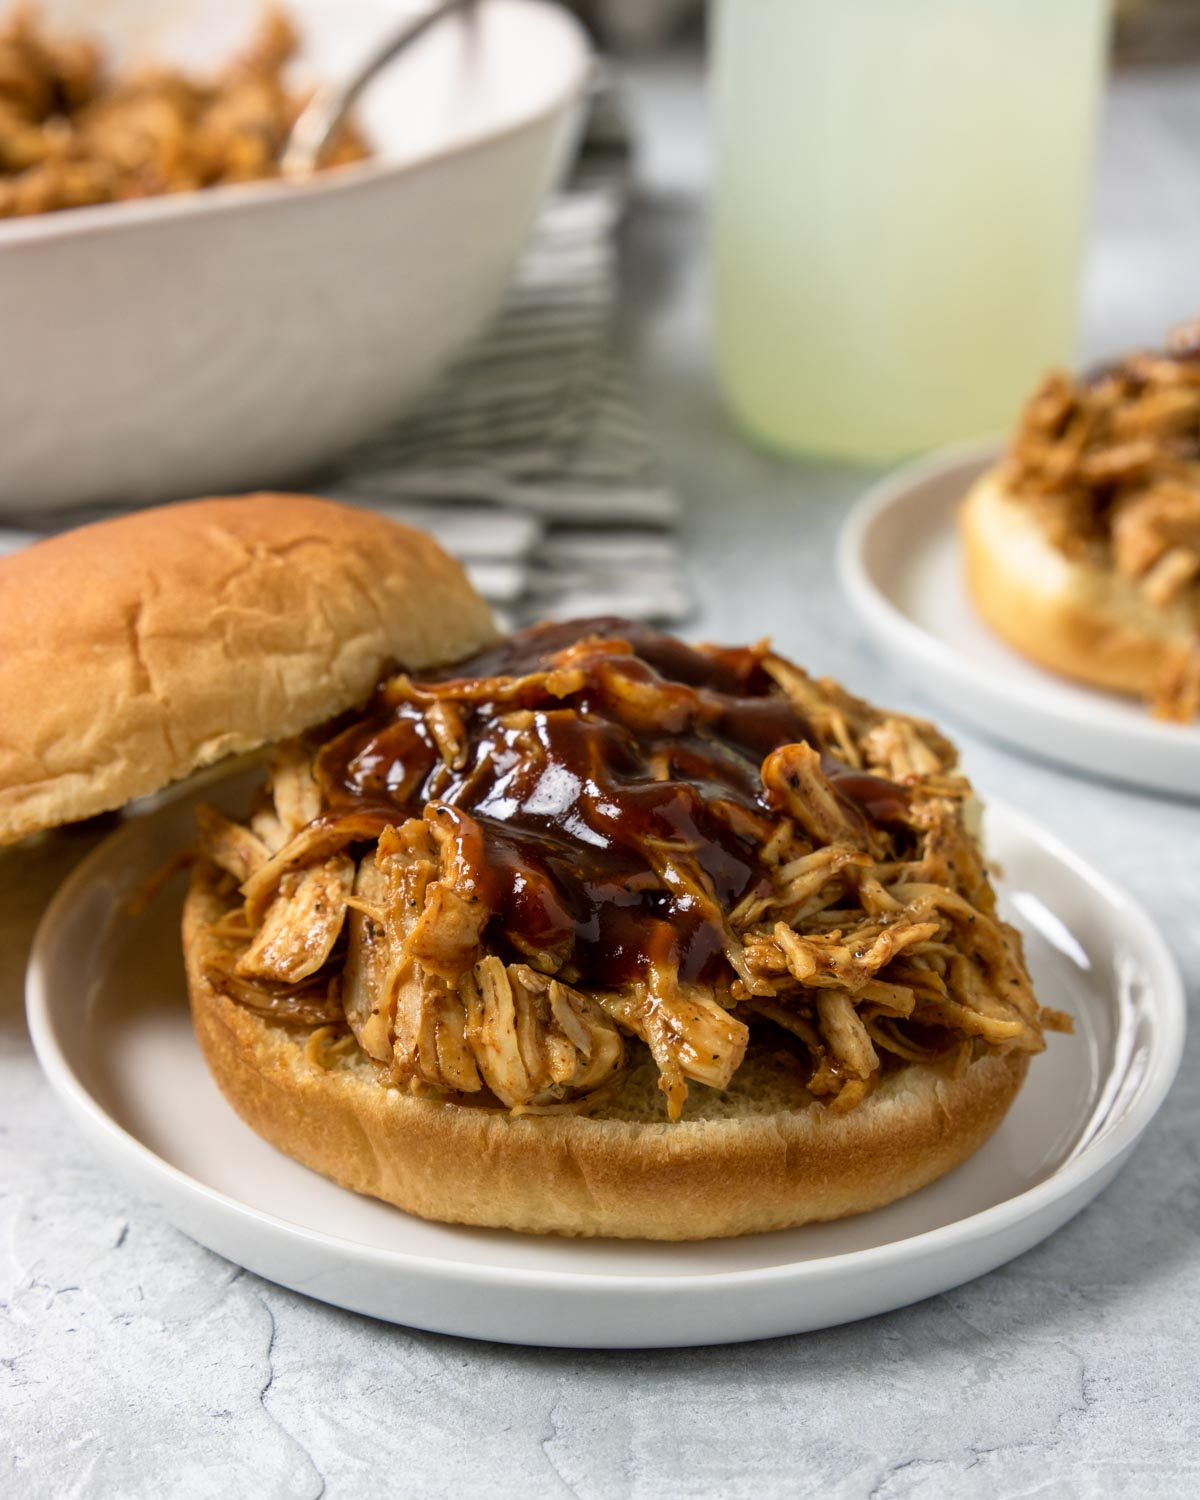 Instant Pot BBQ Chicken Sandwich on a white plate with lemonade in the background